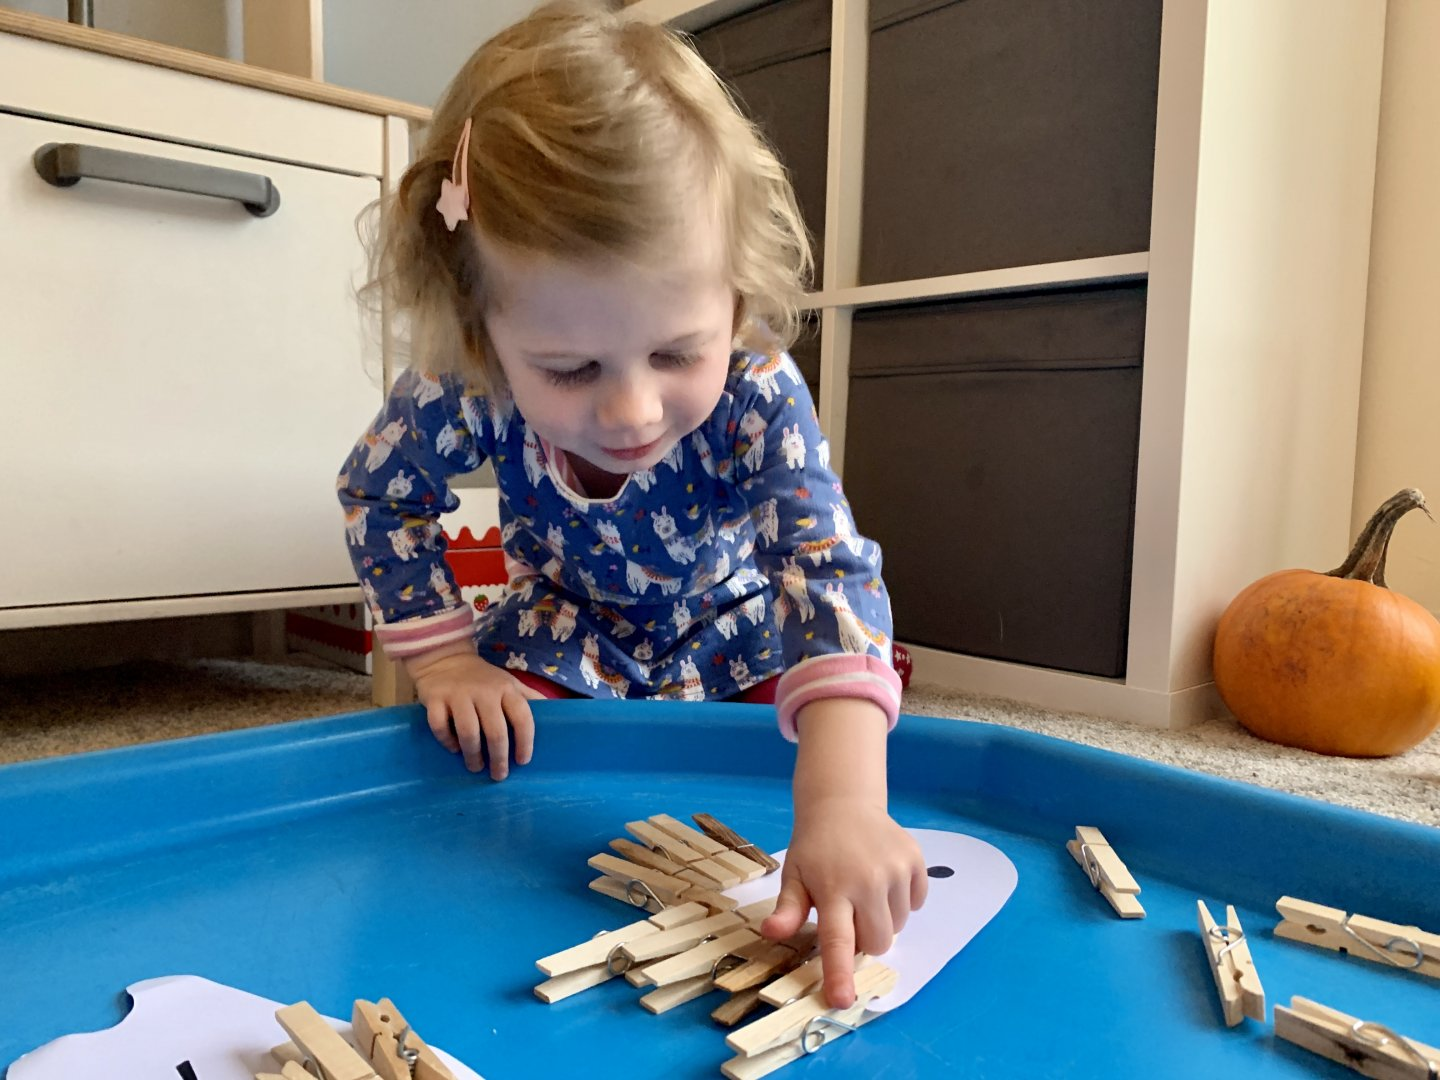 M uses her index finger to point at a peg as she counts the pegs on her cardboard ghost.